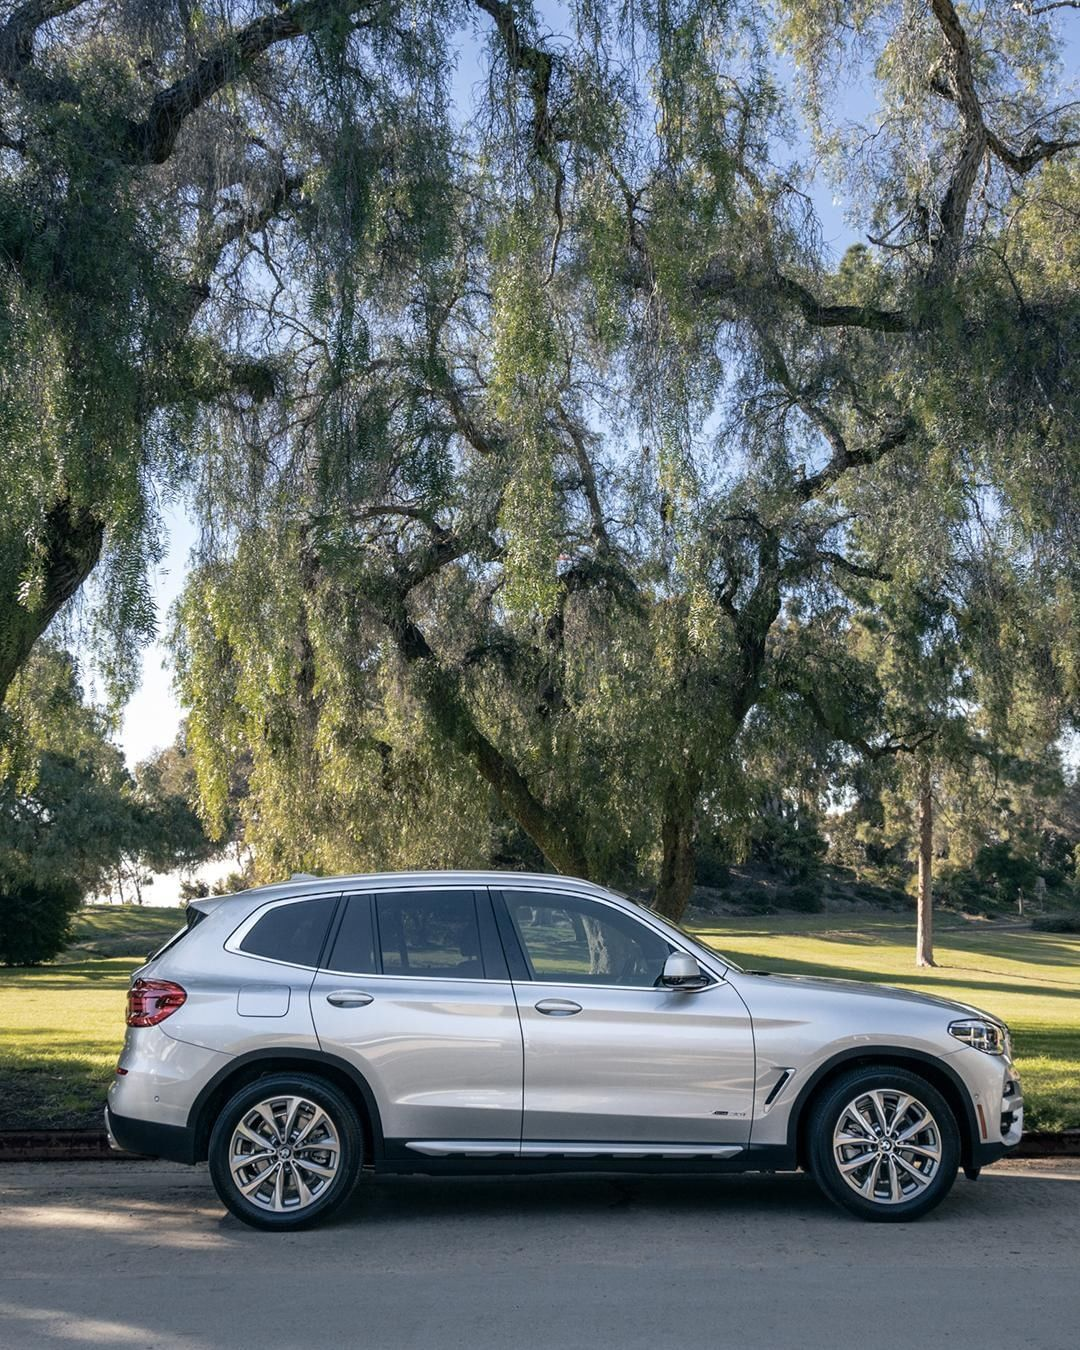 The Automaster Bmw On Instagram Discover What Makes The 2019 Bmw X3 The Ultimate Driving Machine By Visiting Our Showroom Today Shelb Bmw Instagram Bmw X3